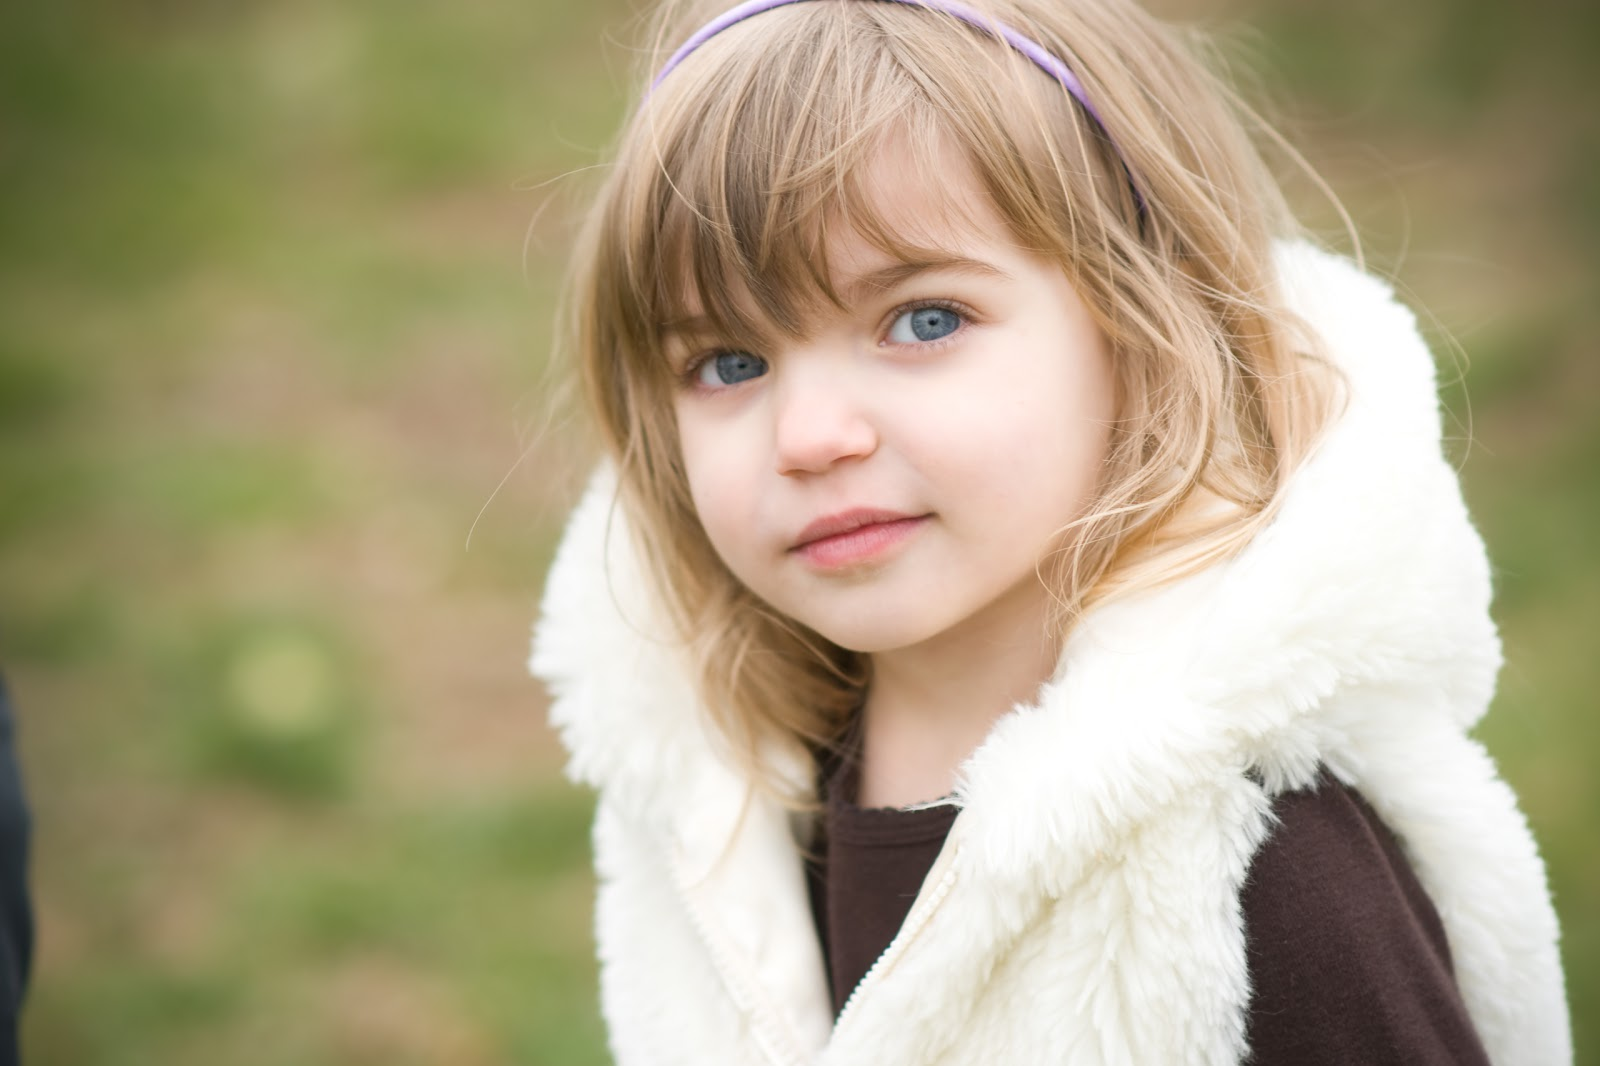 Beautiful Blue Eyes Baby Girl HD Wallpaper   Cute Little Babies